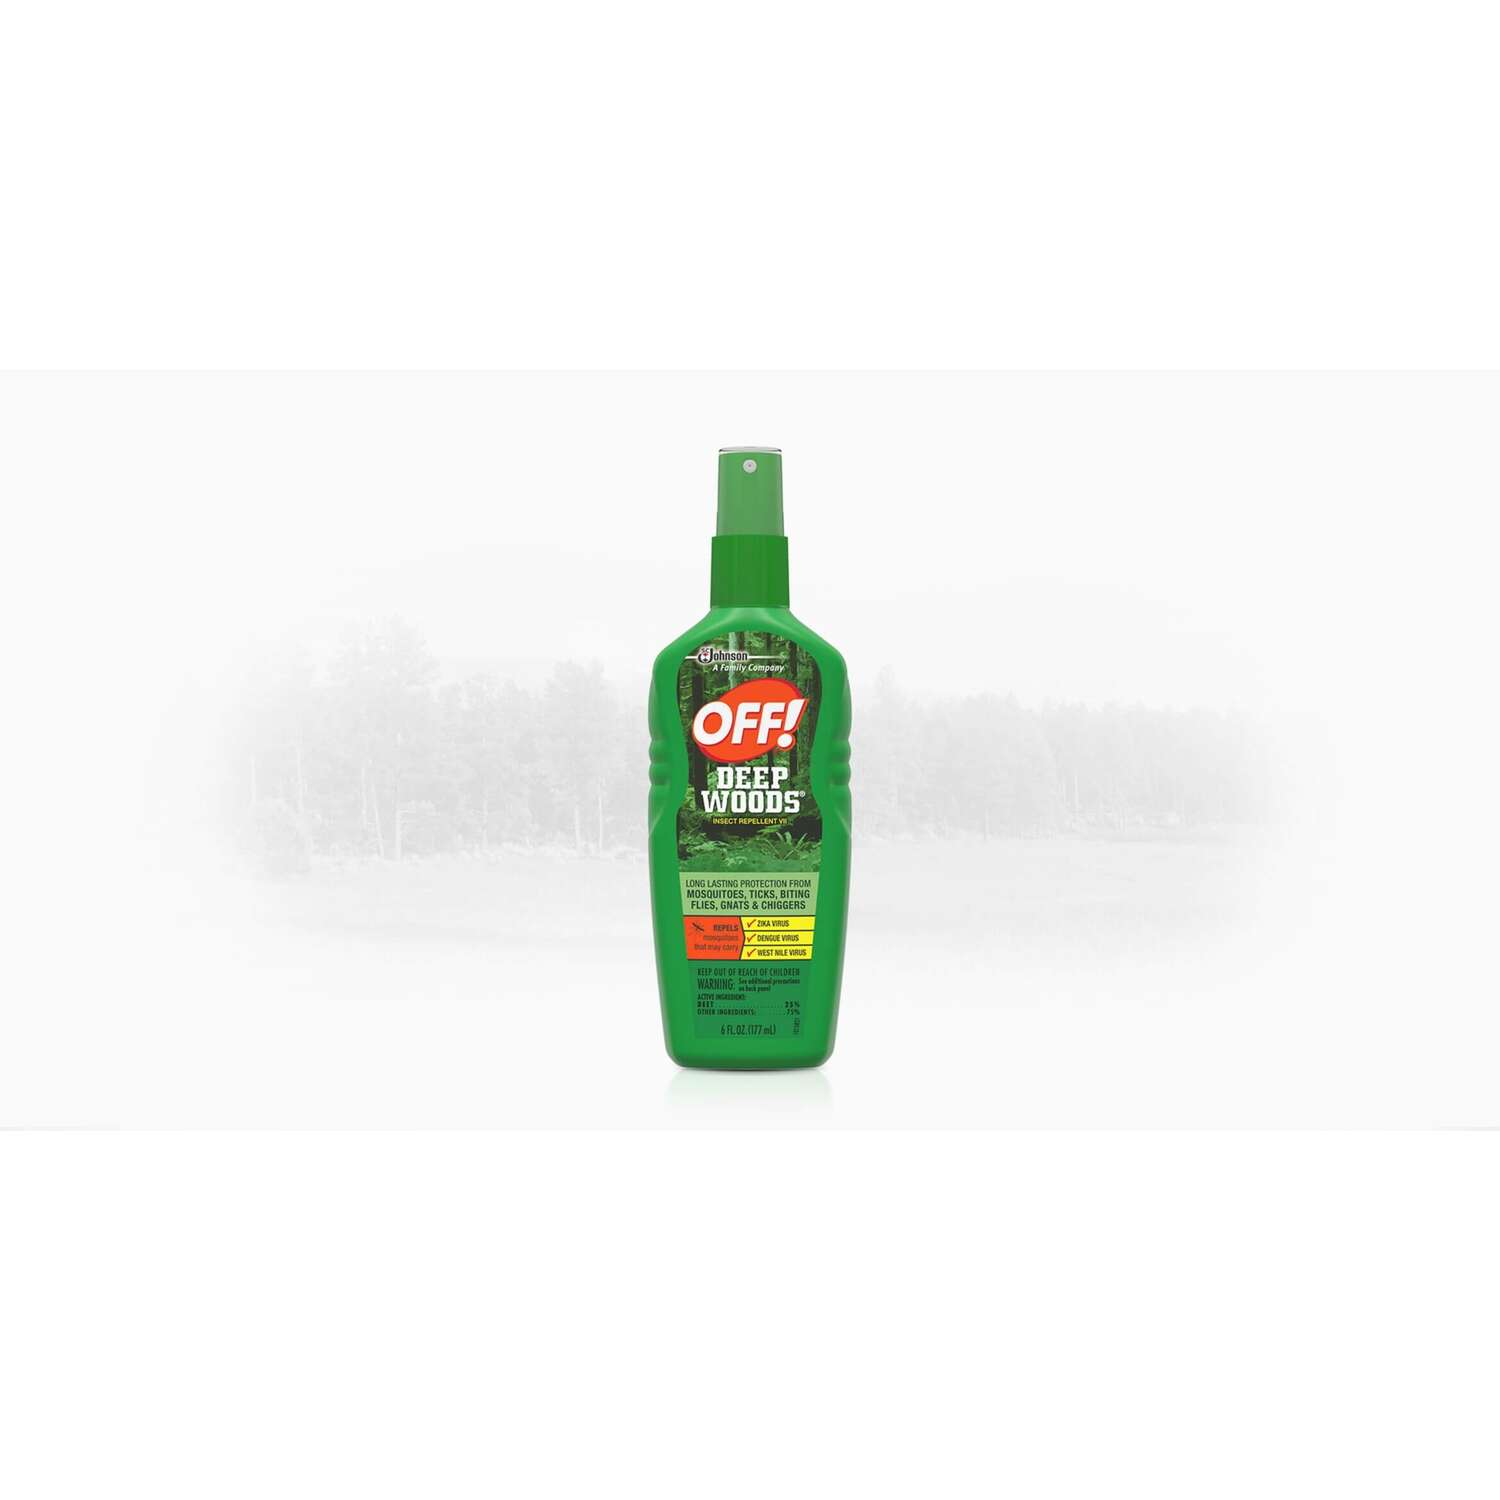 OFF!  Deep Woods  Insect Repellent  Liquid  For Gnats/Mosquitoes/Ticks 6 oz.